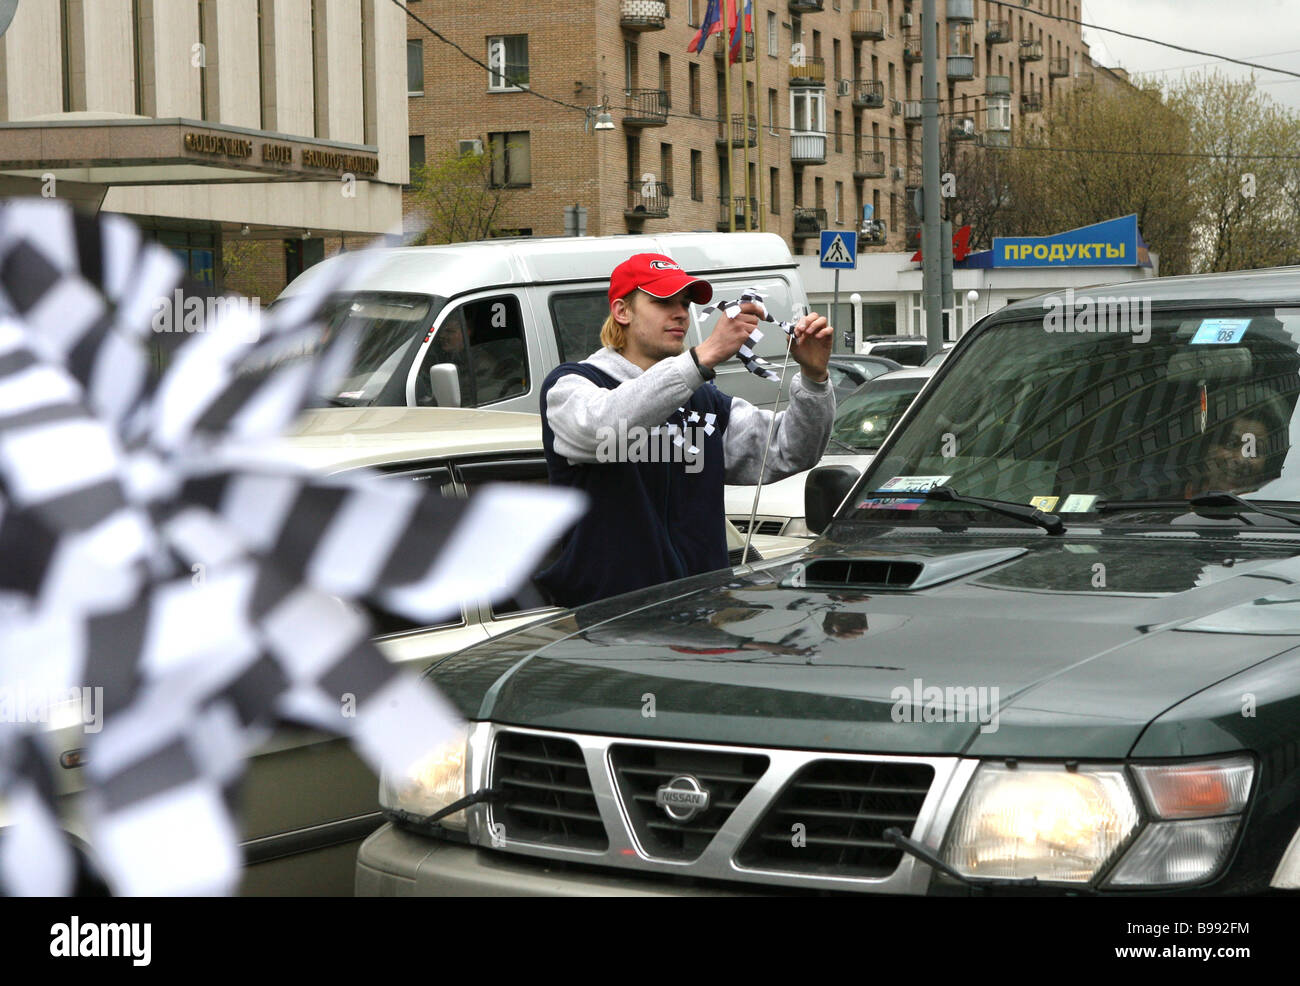 Black Activist Stock Photos Images Alamy Antenna Outdoor Pf Dgt 5000 A Youth Drivers Union Ties And White Ribbon To The Of